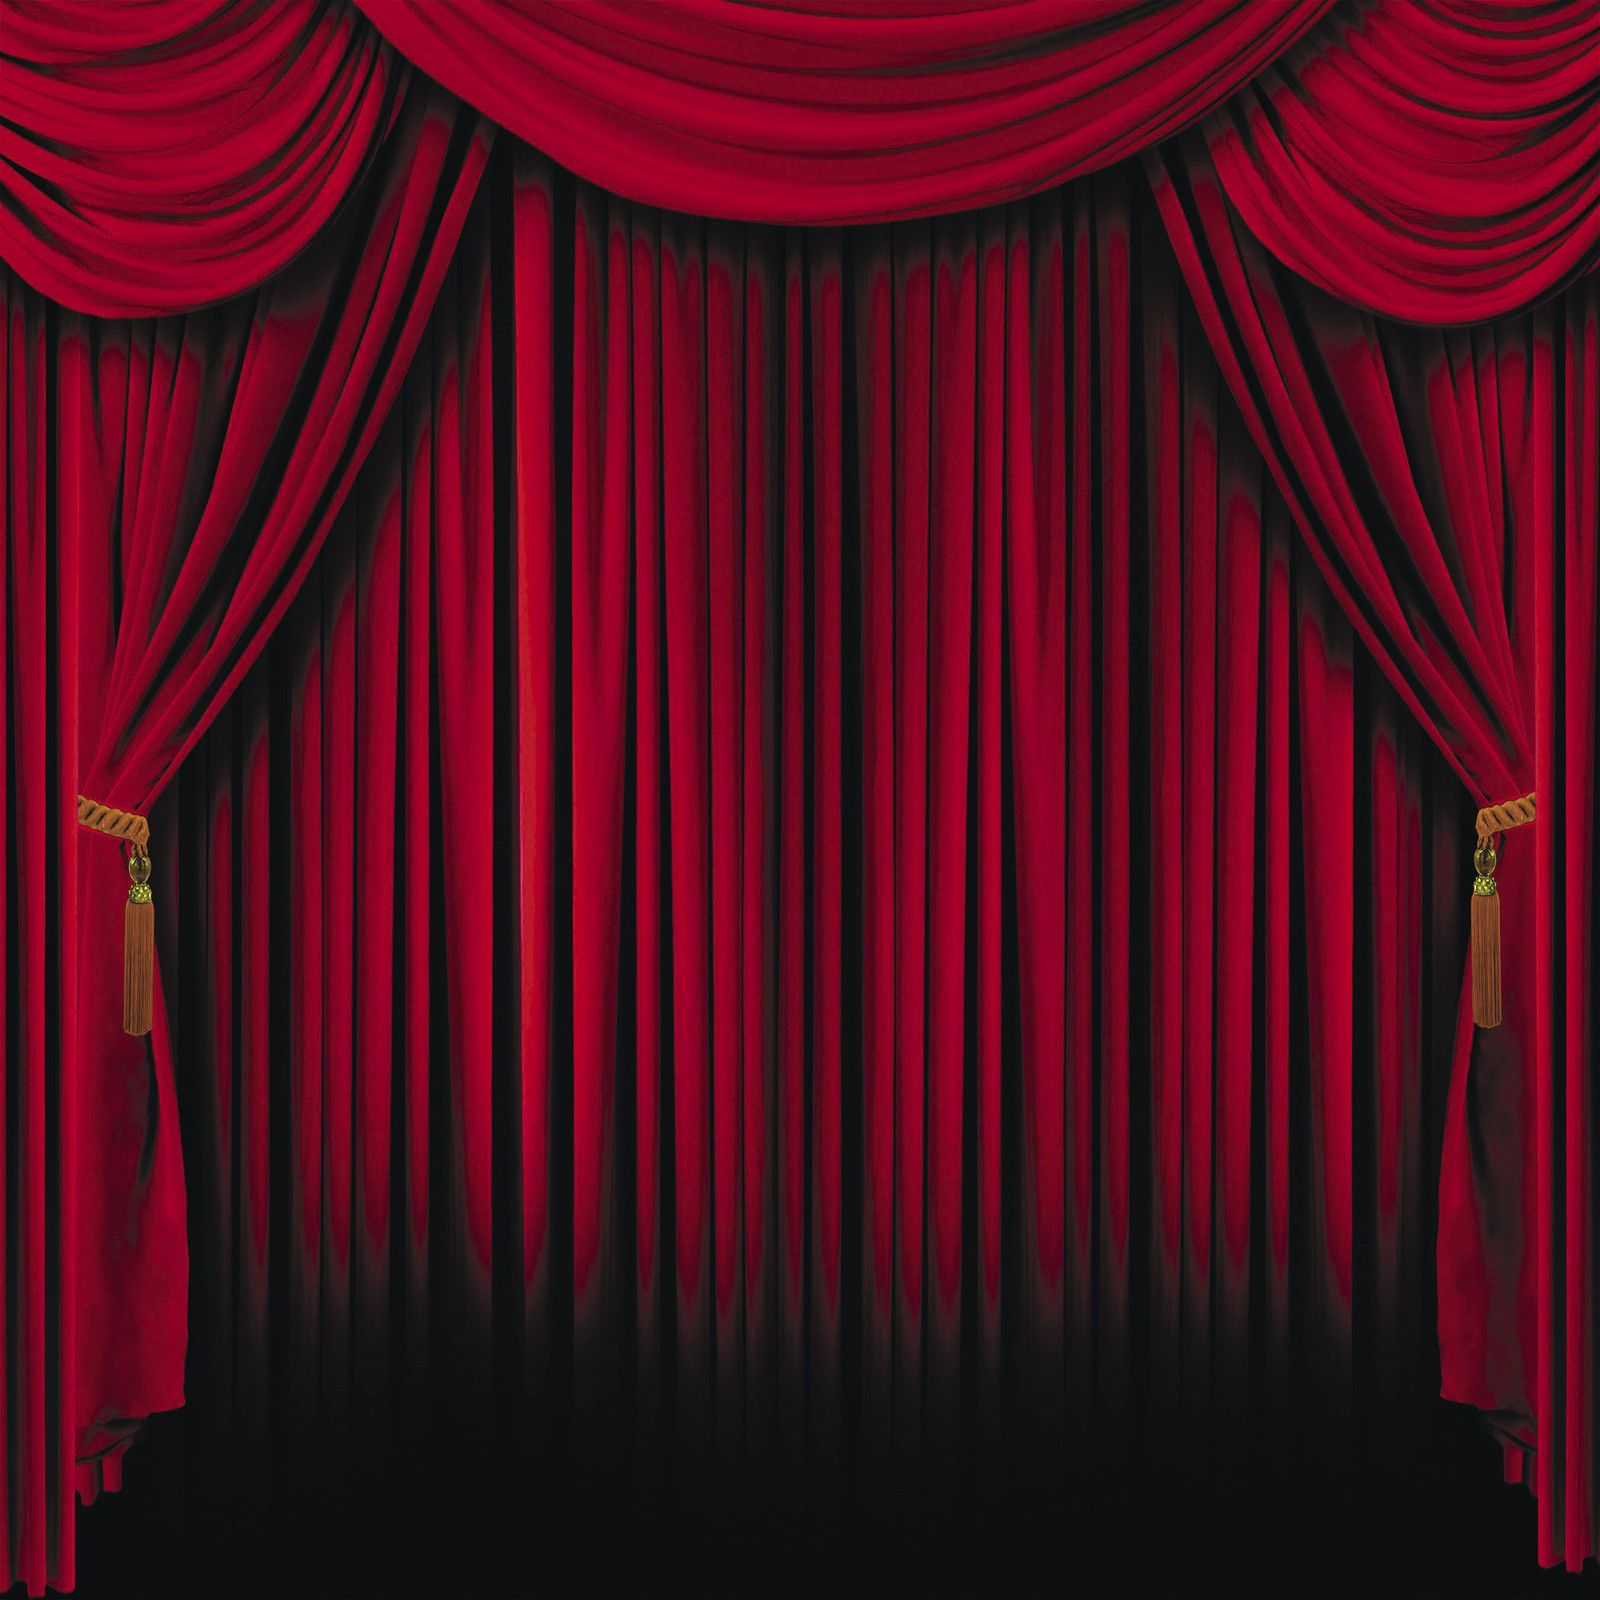 Details About Hollywood Movie Magic Show Circus Party